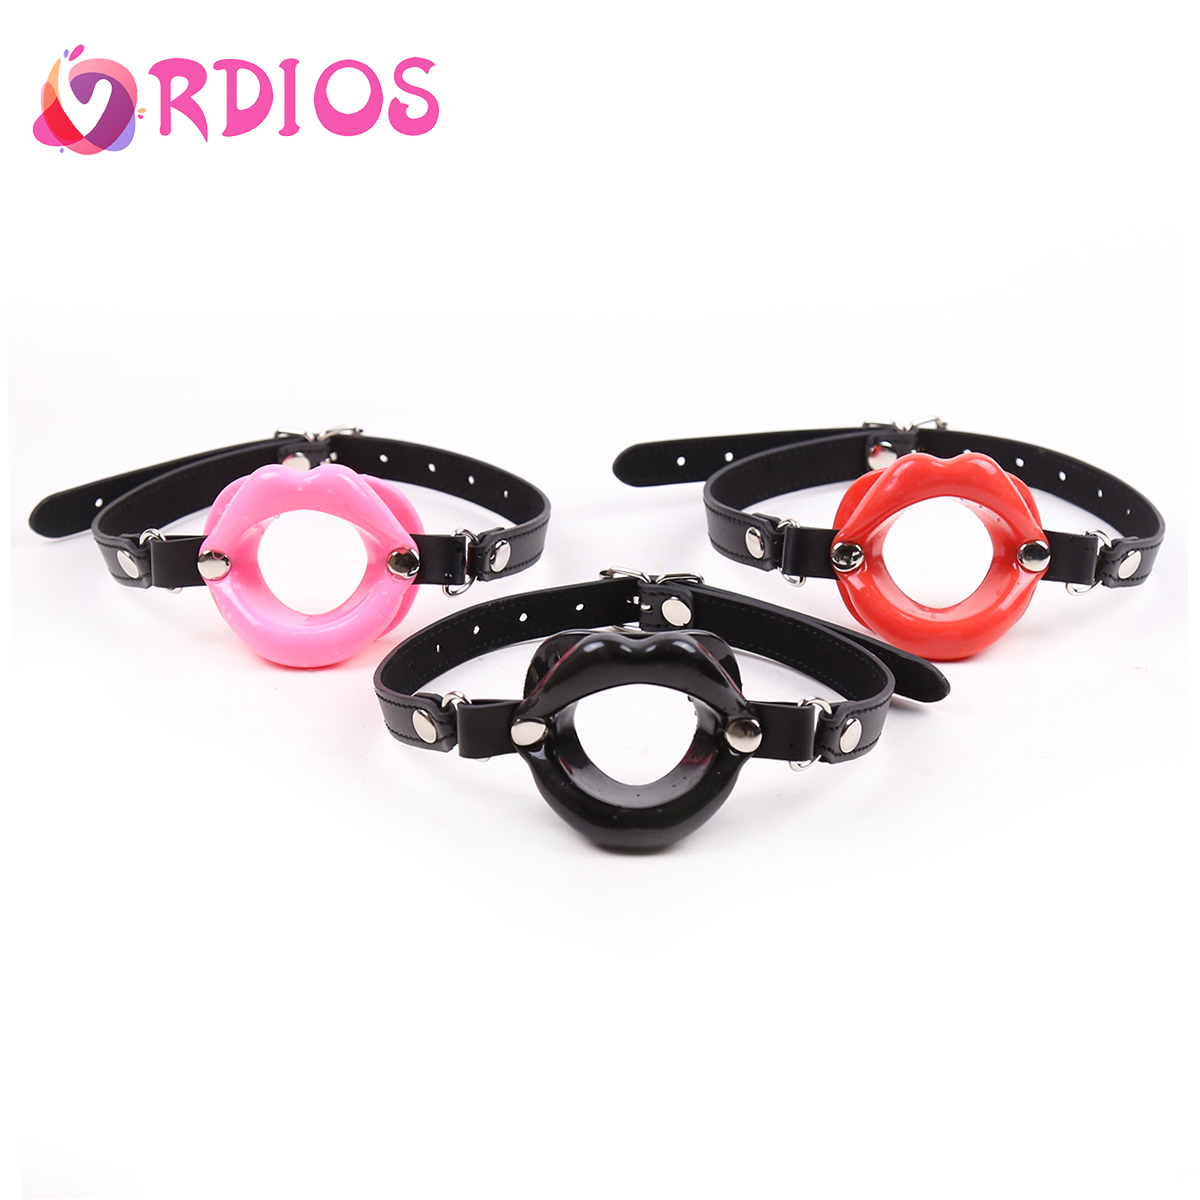 VRDIOS Open Mouth Gag Ball O-shaped Silicone Mouth Plug Sex Bondage Adult Mouth Ball Gag Sexy Lingerie Hot Erotic Games Sex Toys